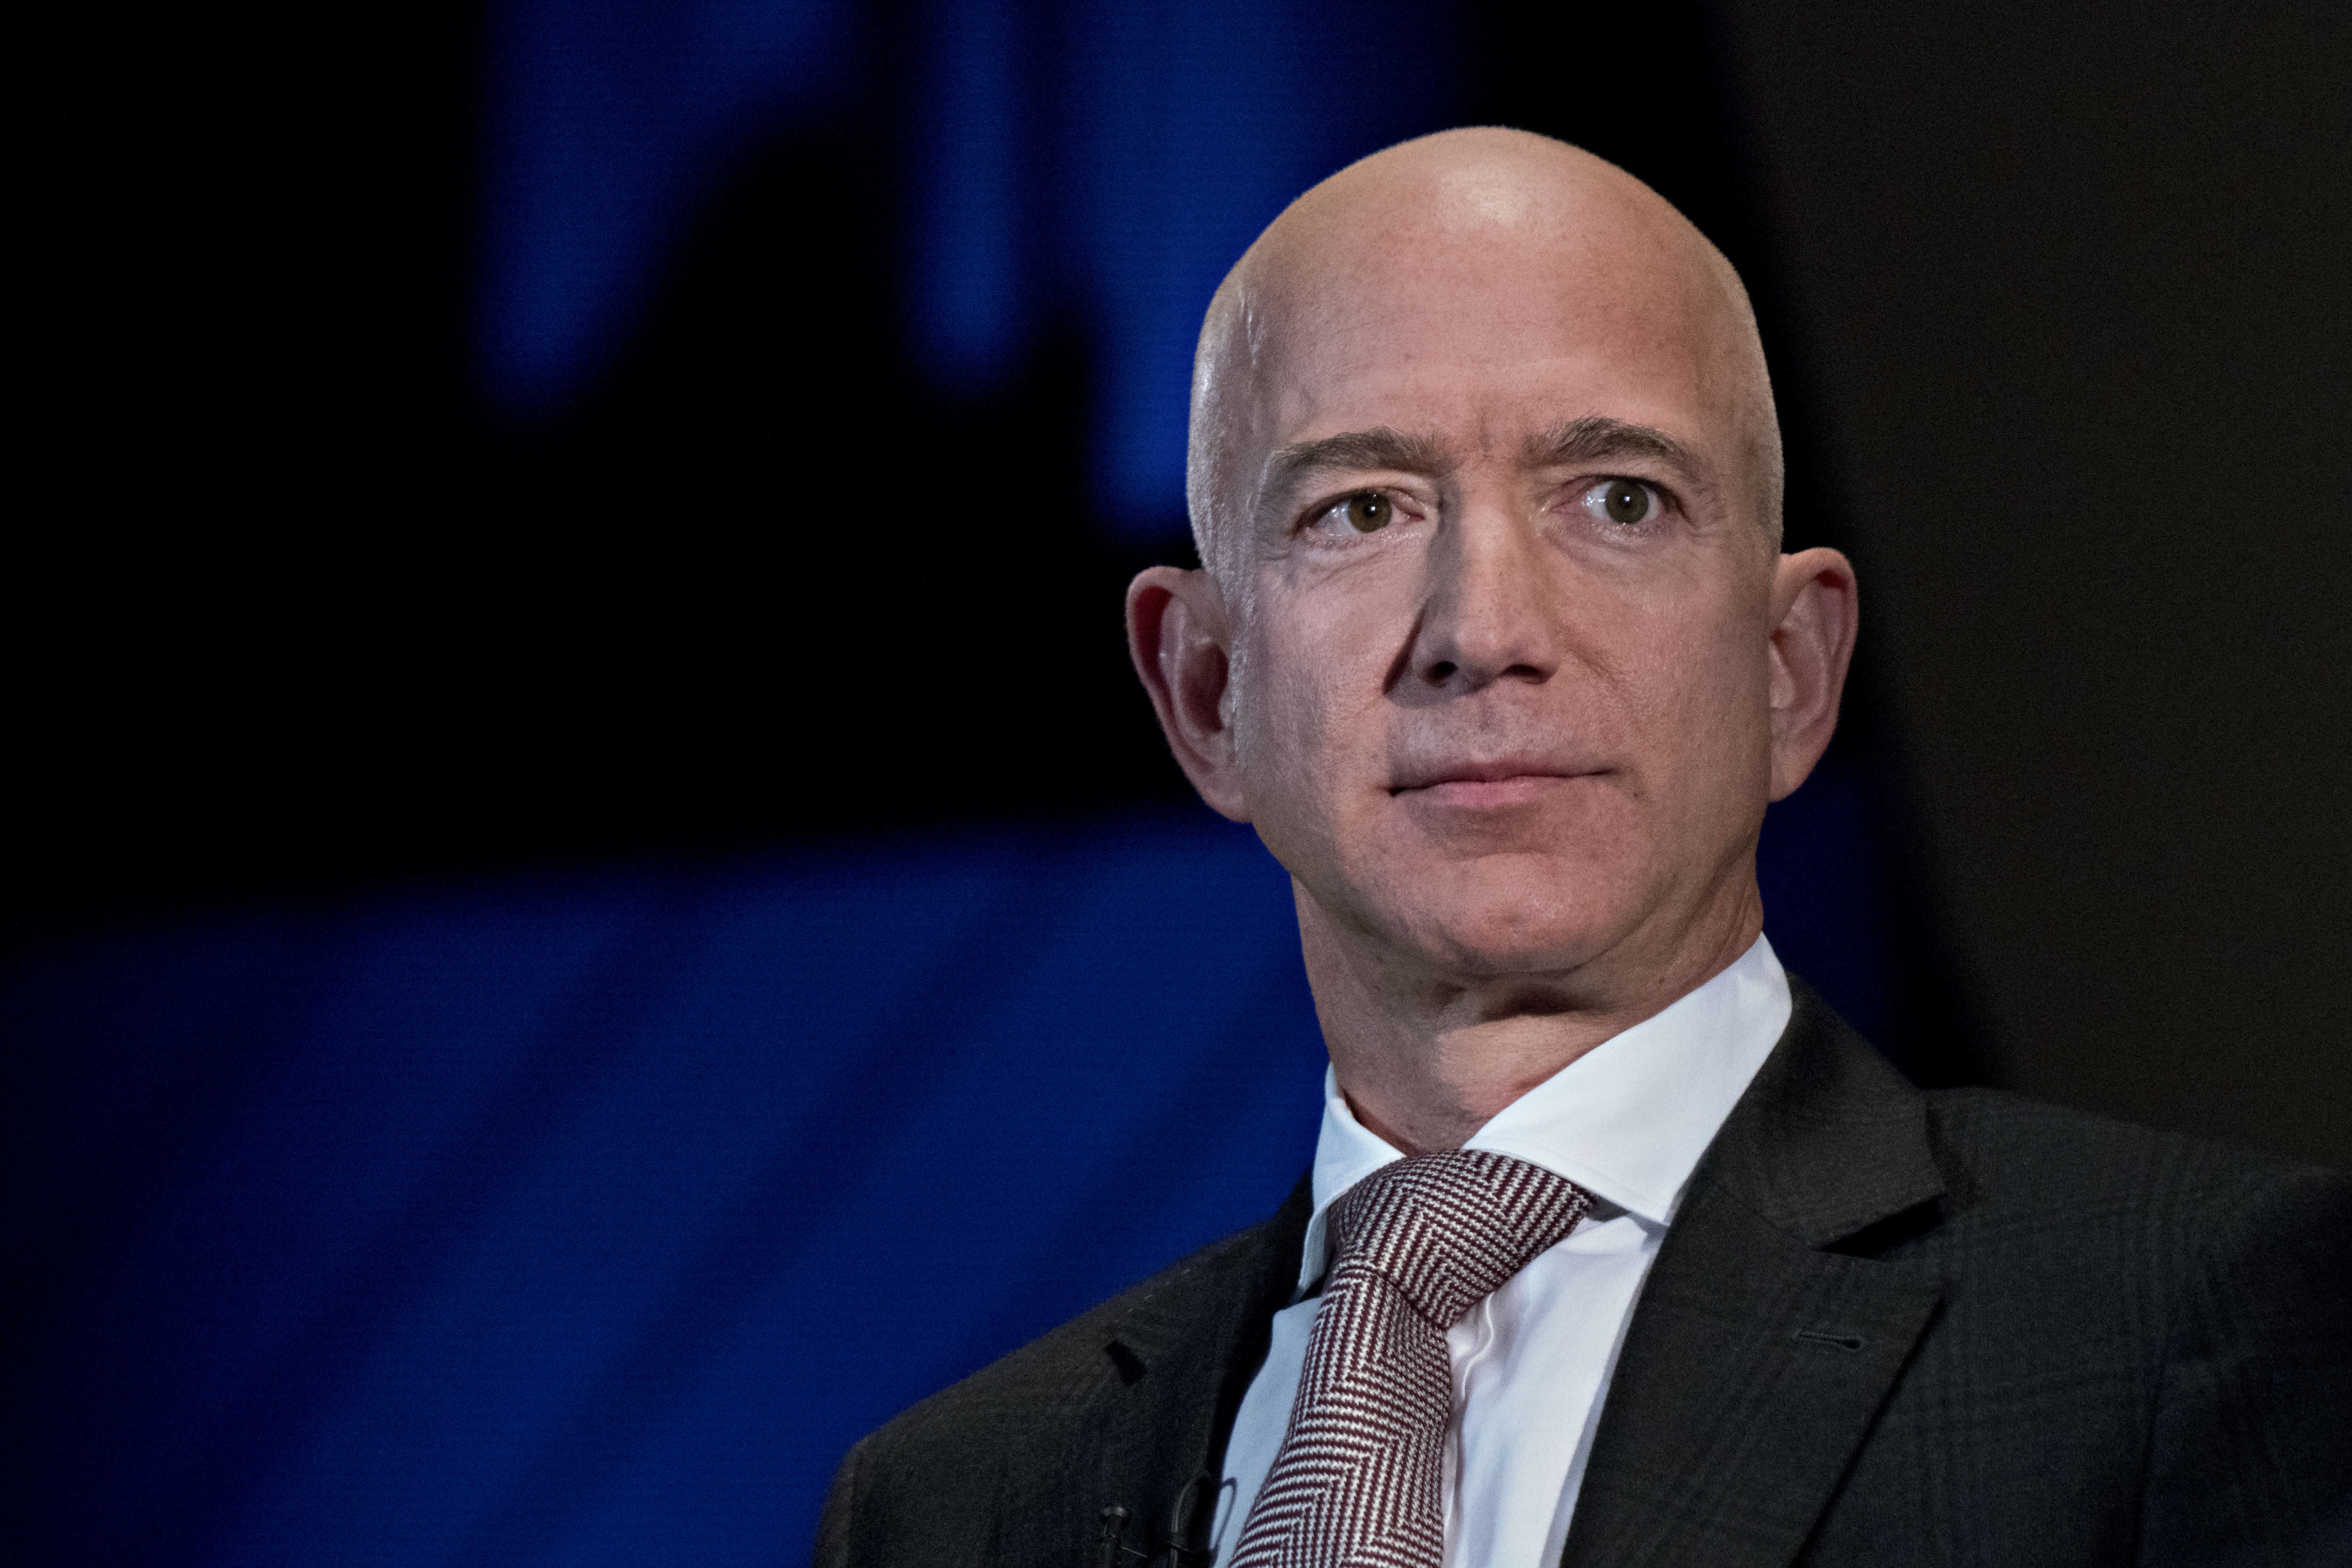 Security consultants hired by Jeff Bezos think his phone might have been hacked by Saudi crown prince, report says